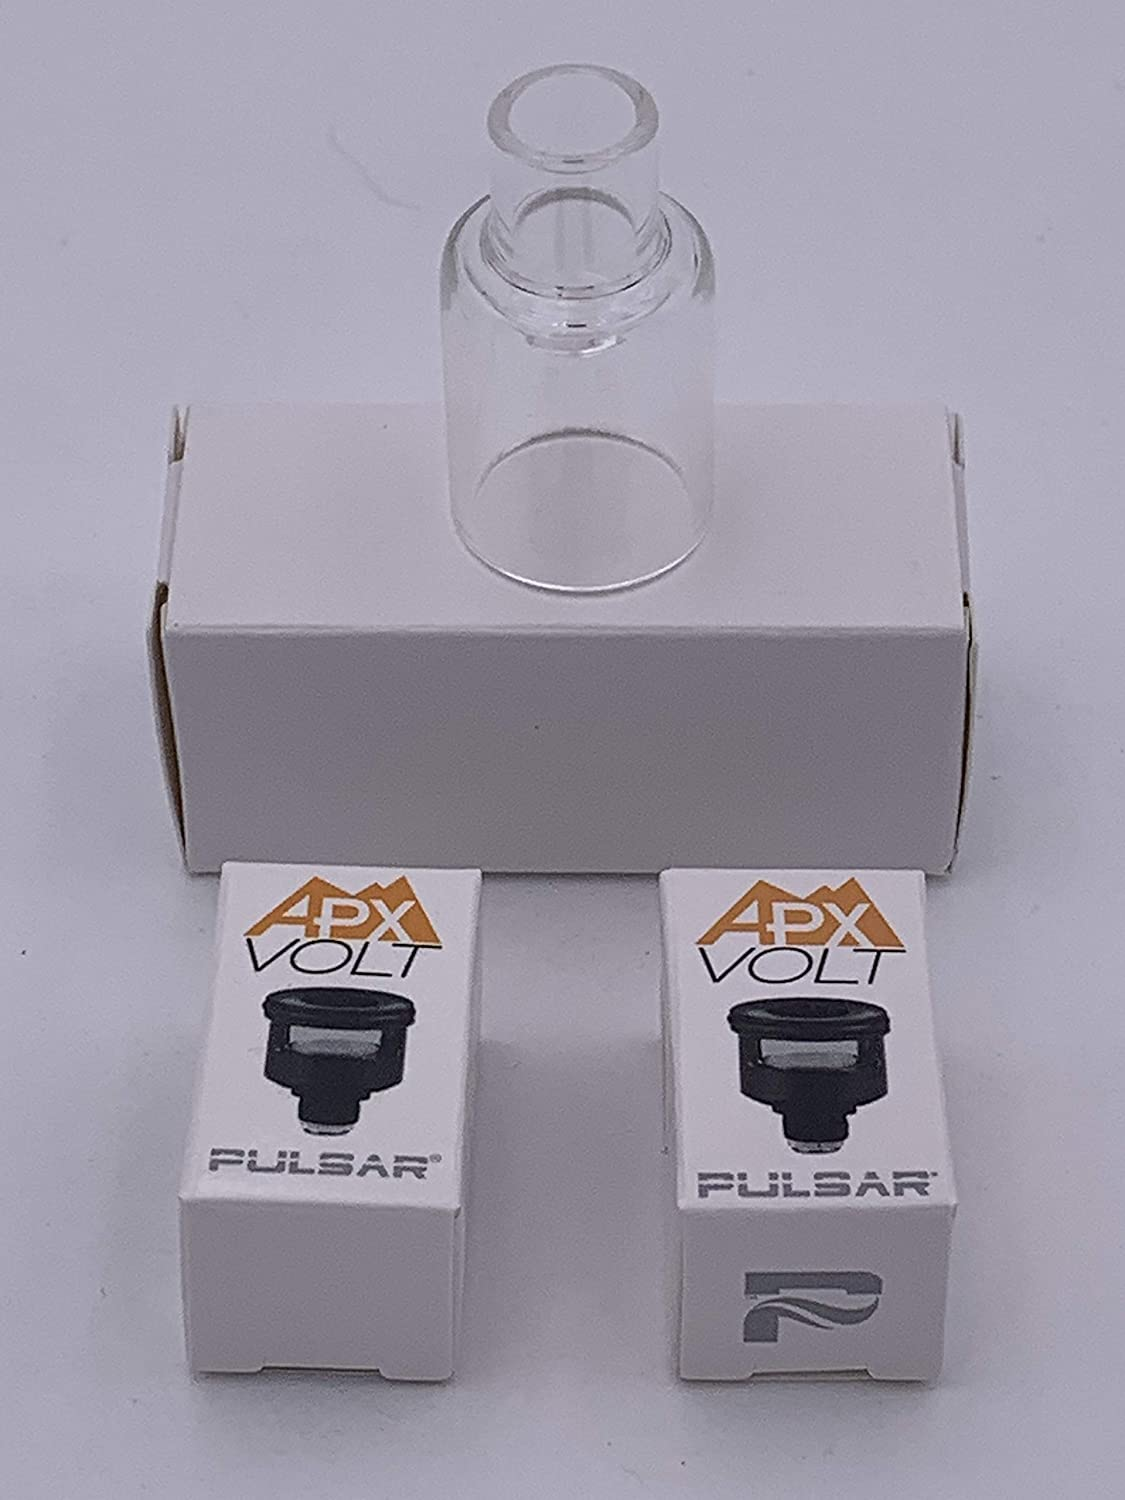 Genuine Pulsar APX Volt Parts Kit Replacement Glass Mouthpiece, Quartz and Ceramic Replacement Heating Elements